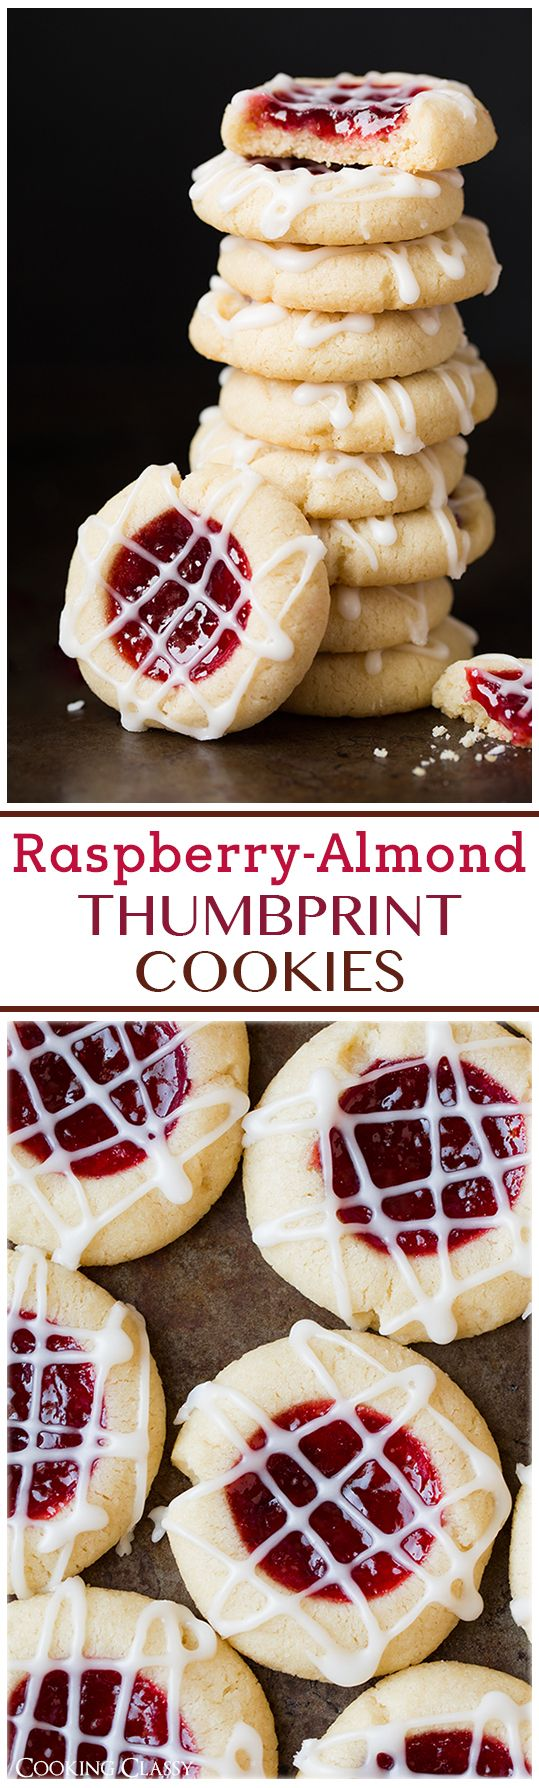 legit air jordans for cheap Raspberry Almond Shortbread Thumbprint Cookies   these are one of my FAVORITE cookies   recipe  cookie